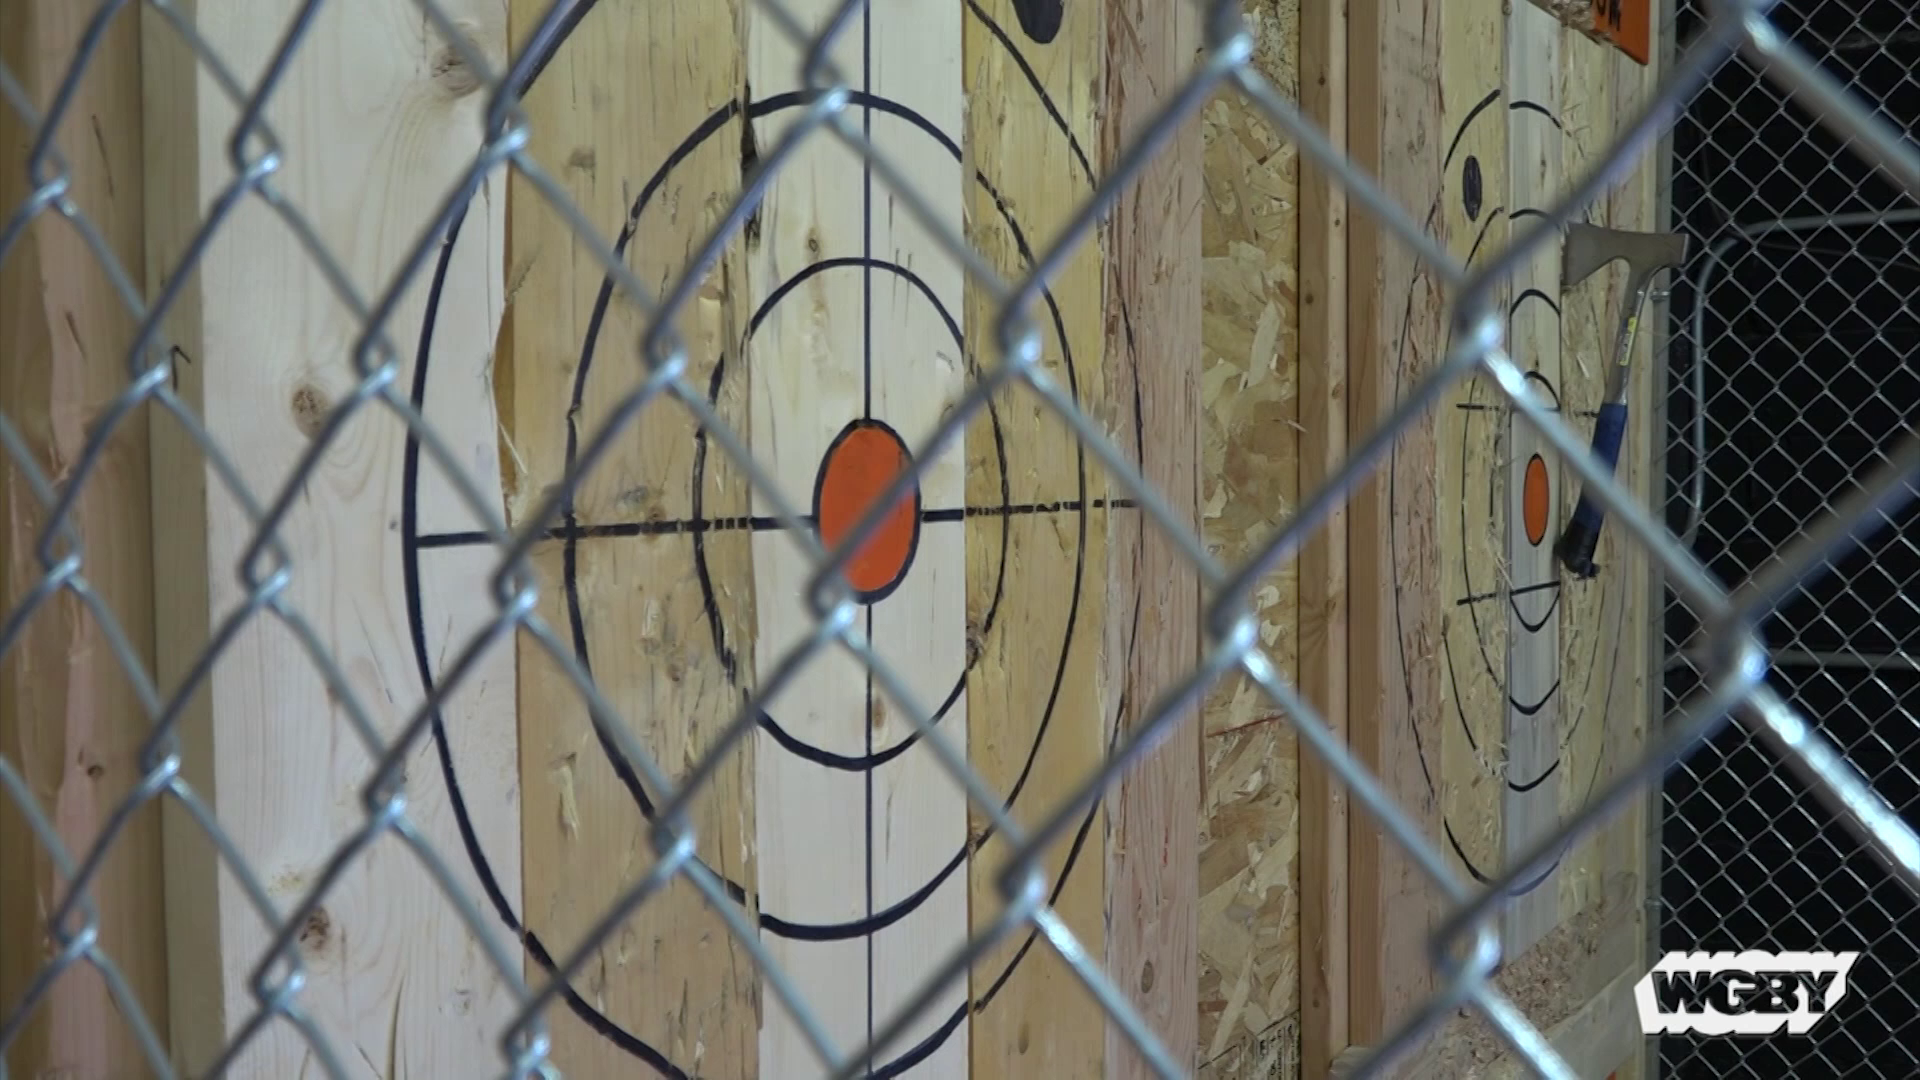 After seeing the sport in Montreal, Anneliese Townsend opened Agawam Axe House to bring axe throwing to residents of western Massachusetts.